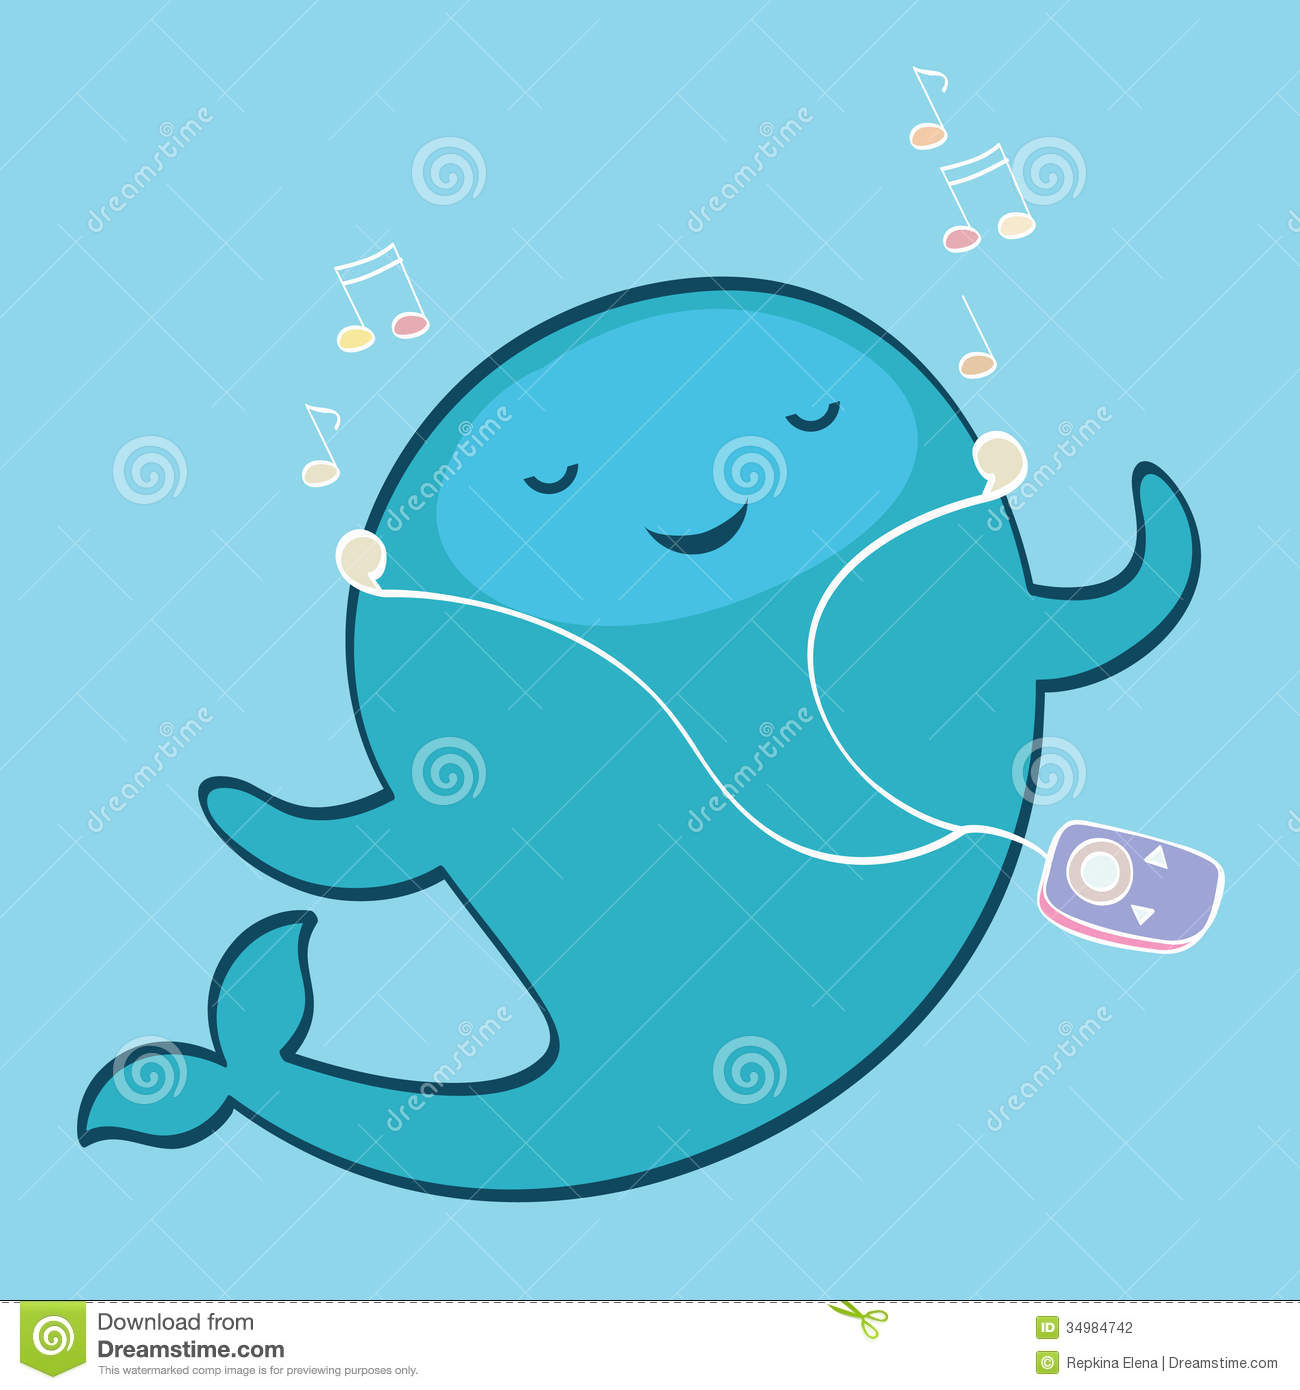 cute whale iphone wallpaper - photo #21